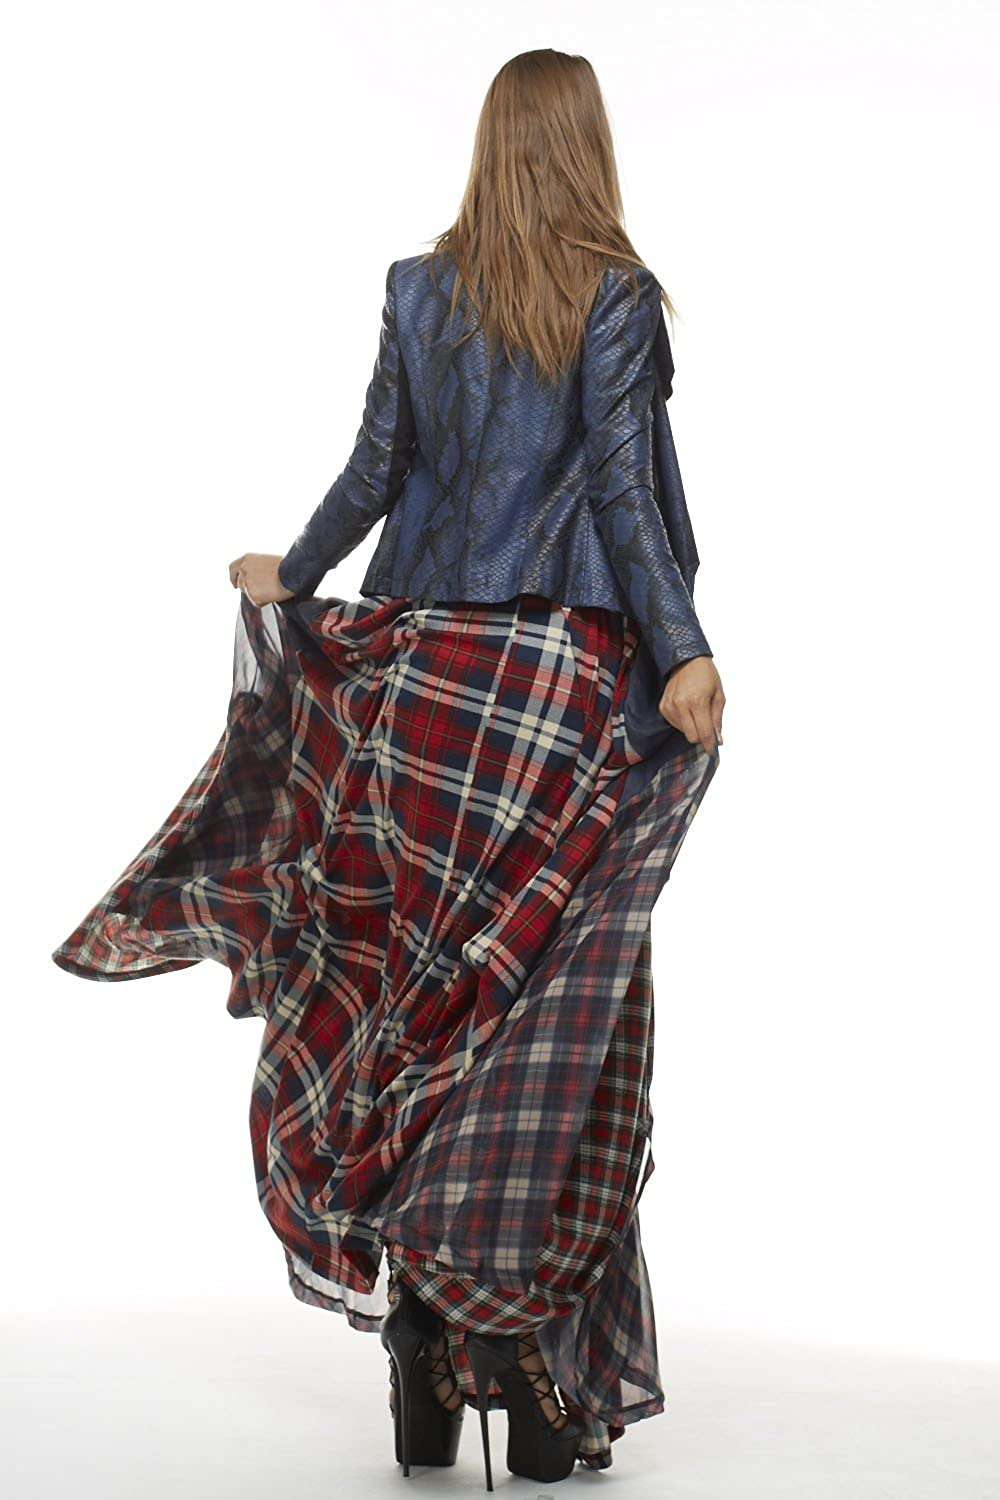 d538633654 TOV The Damsel`s Plaid Maxi Skirt Punk Princess Pick Up Pleats (44, Red  Plaid) at Amazon Women's Clothing store: